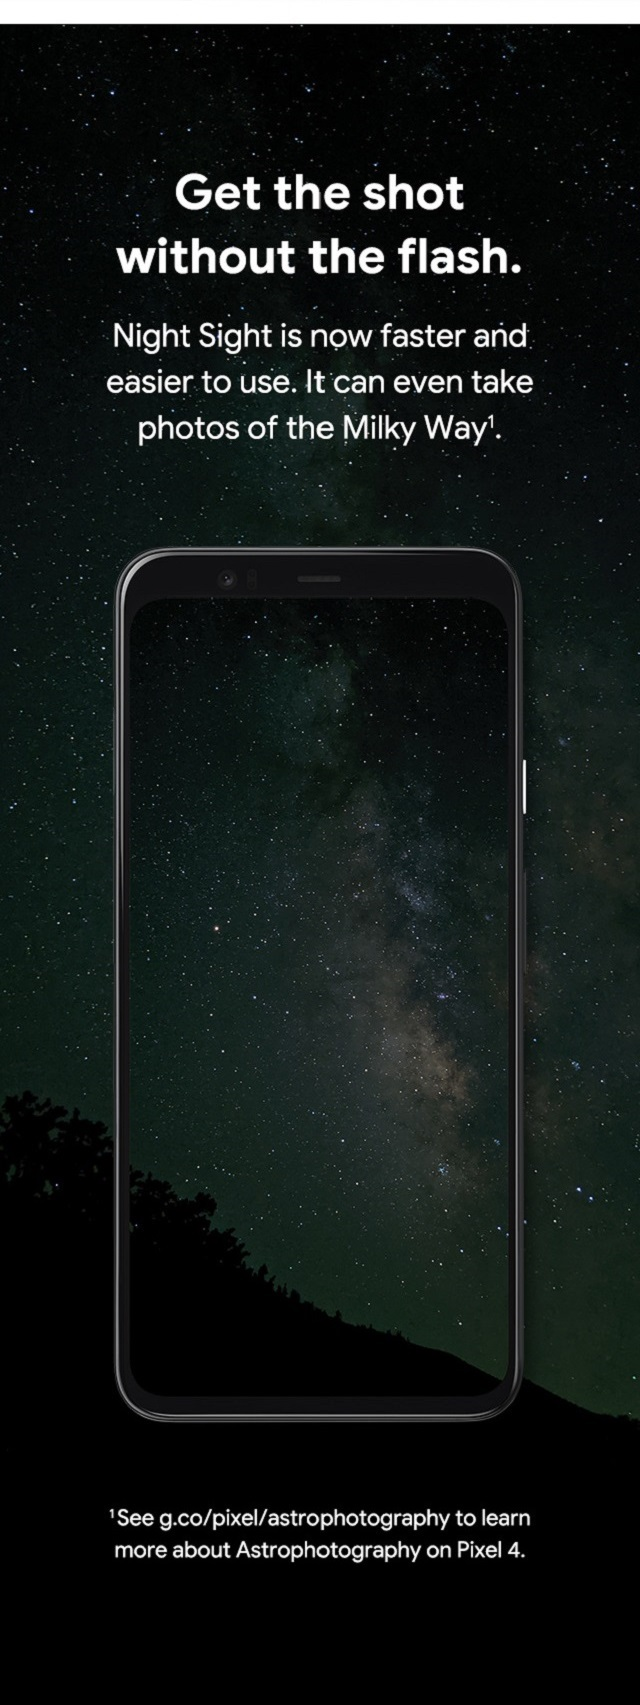 Google Night Sight – Get the shot without the flash.